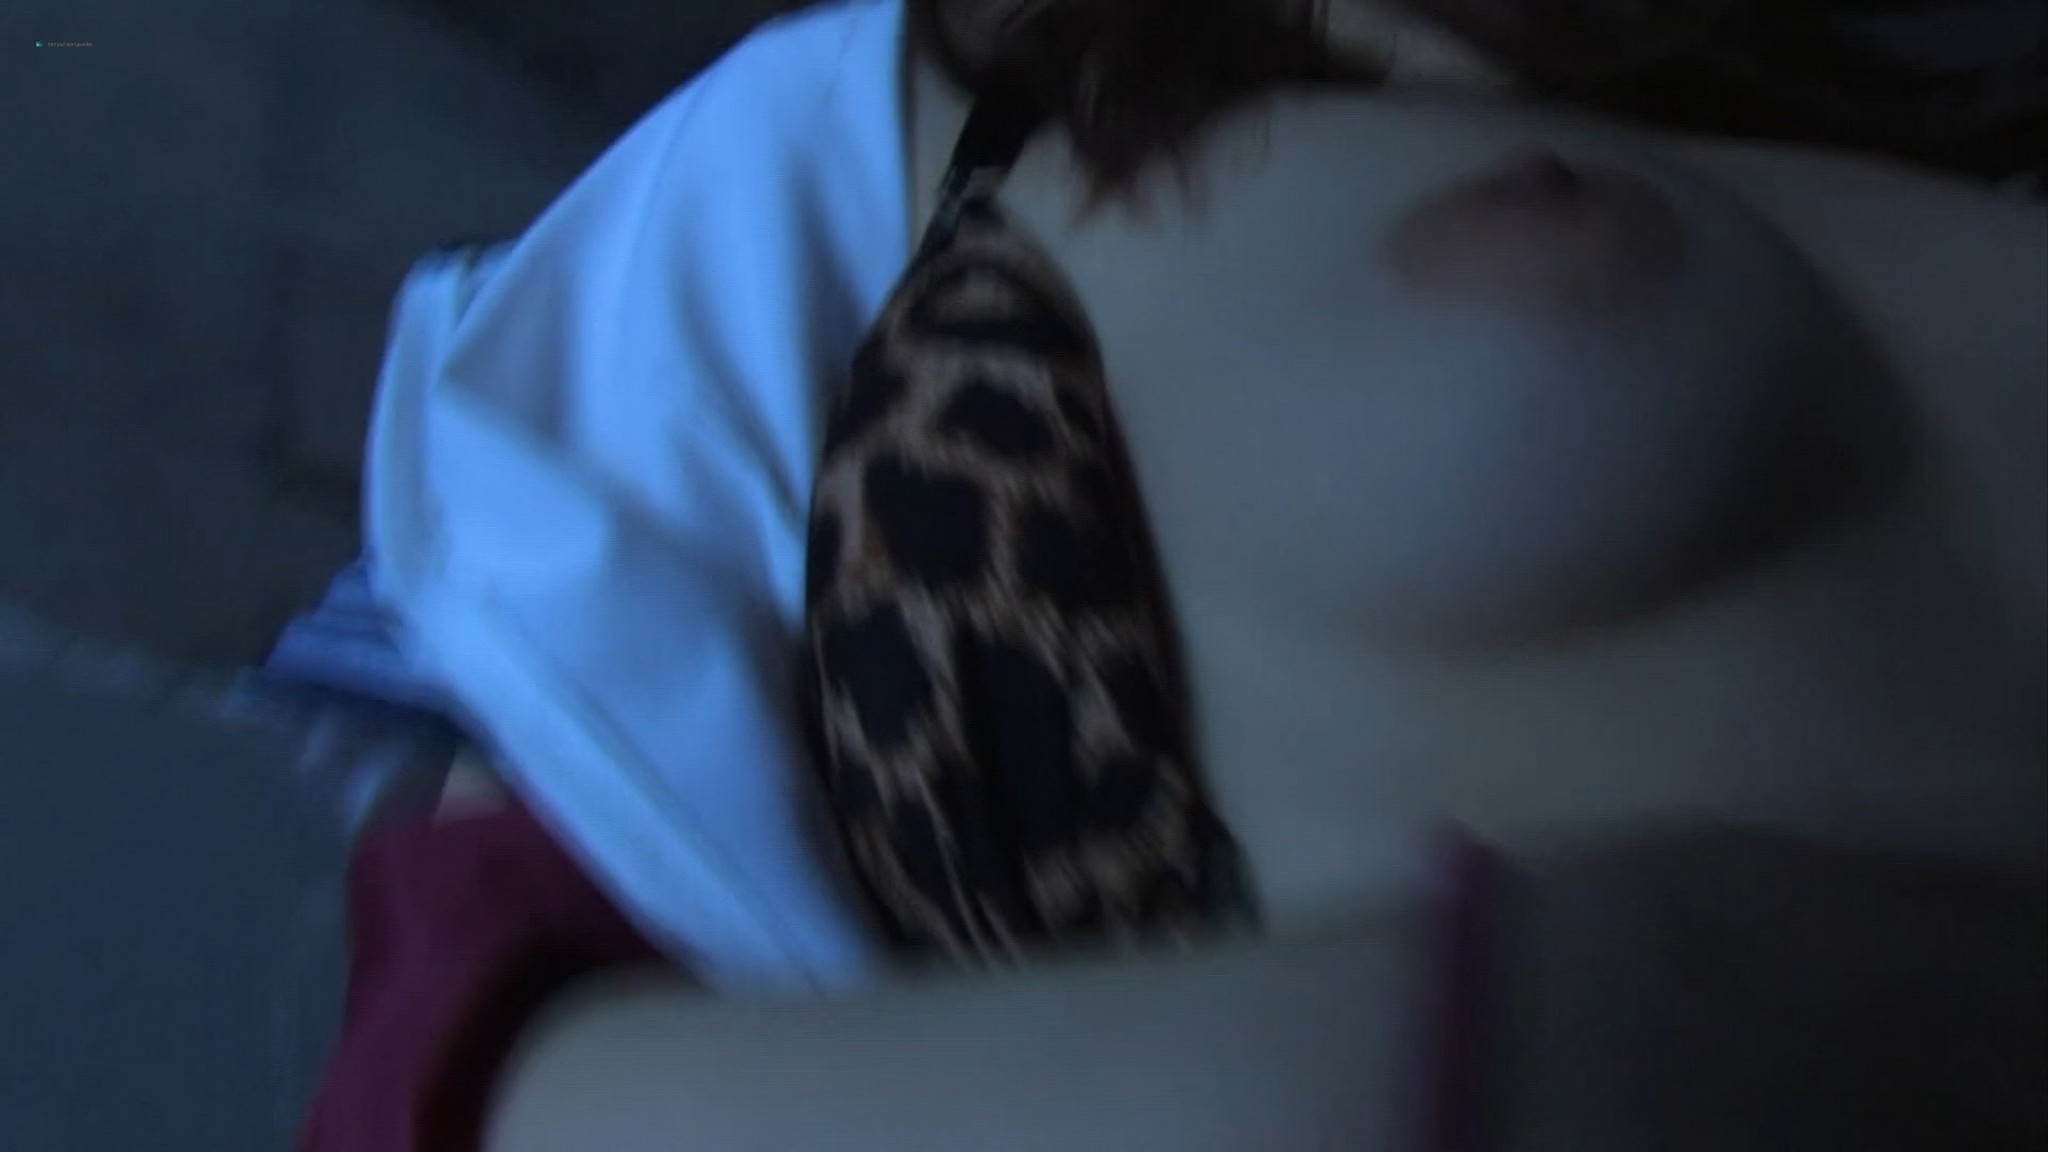 Yui Aikawa nude sex Asami Rina Aikawa and others nude and a lot of sex Lust of the Dead JP 2012 1080p BluRay 16